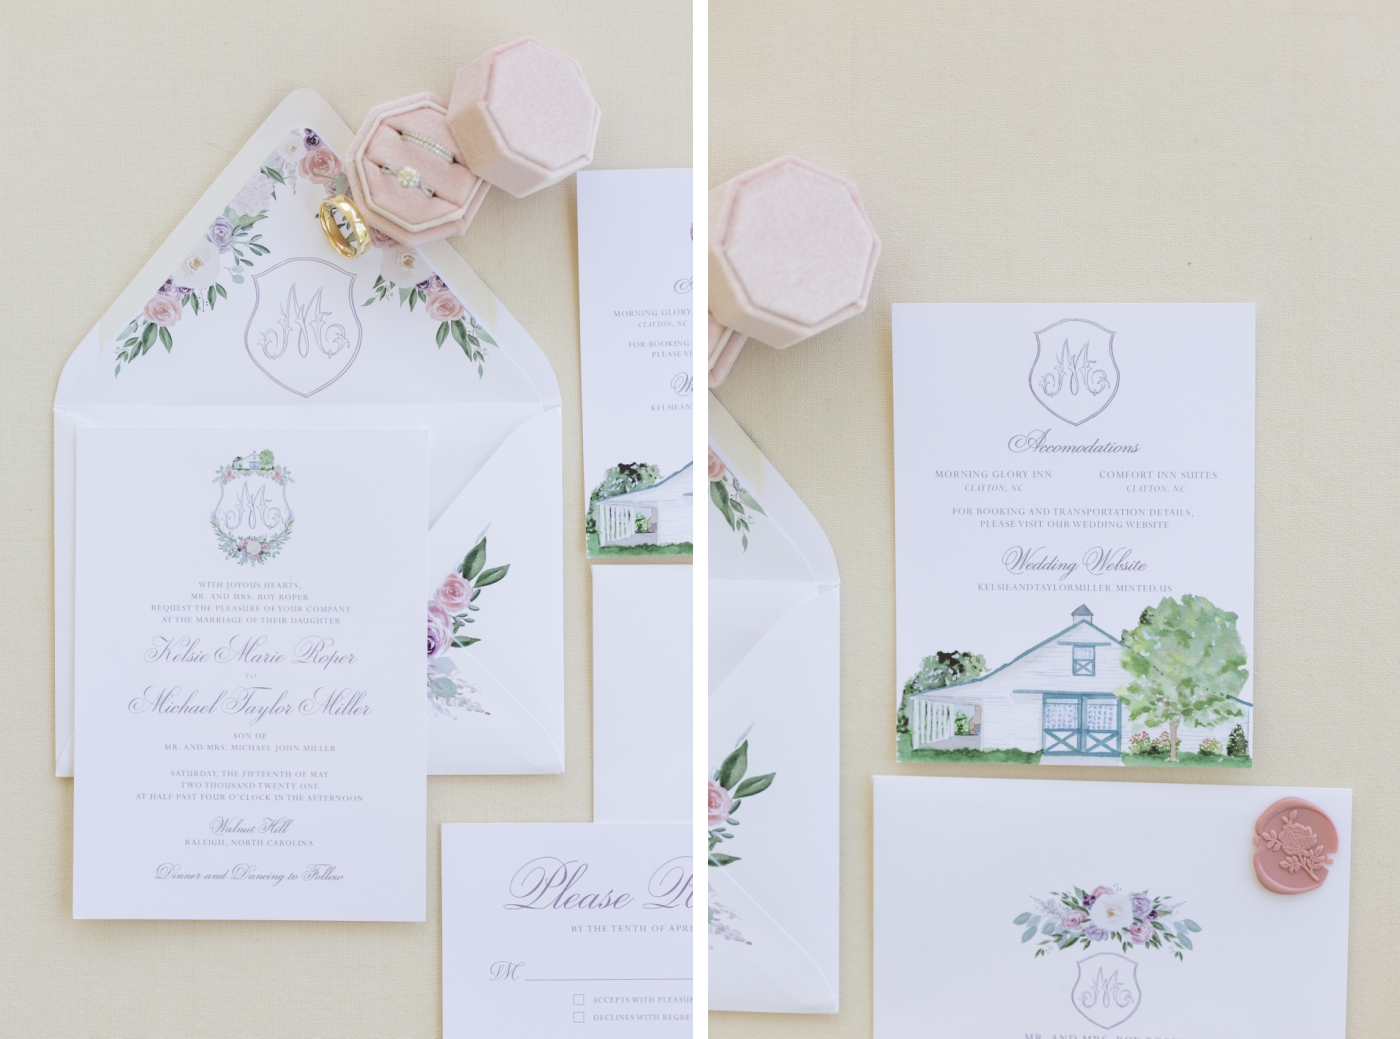 Lavender and blush hand painted wedding invitations for a wedding at Walnut Hill